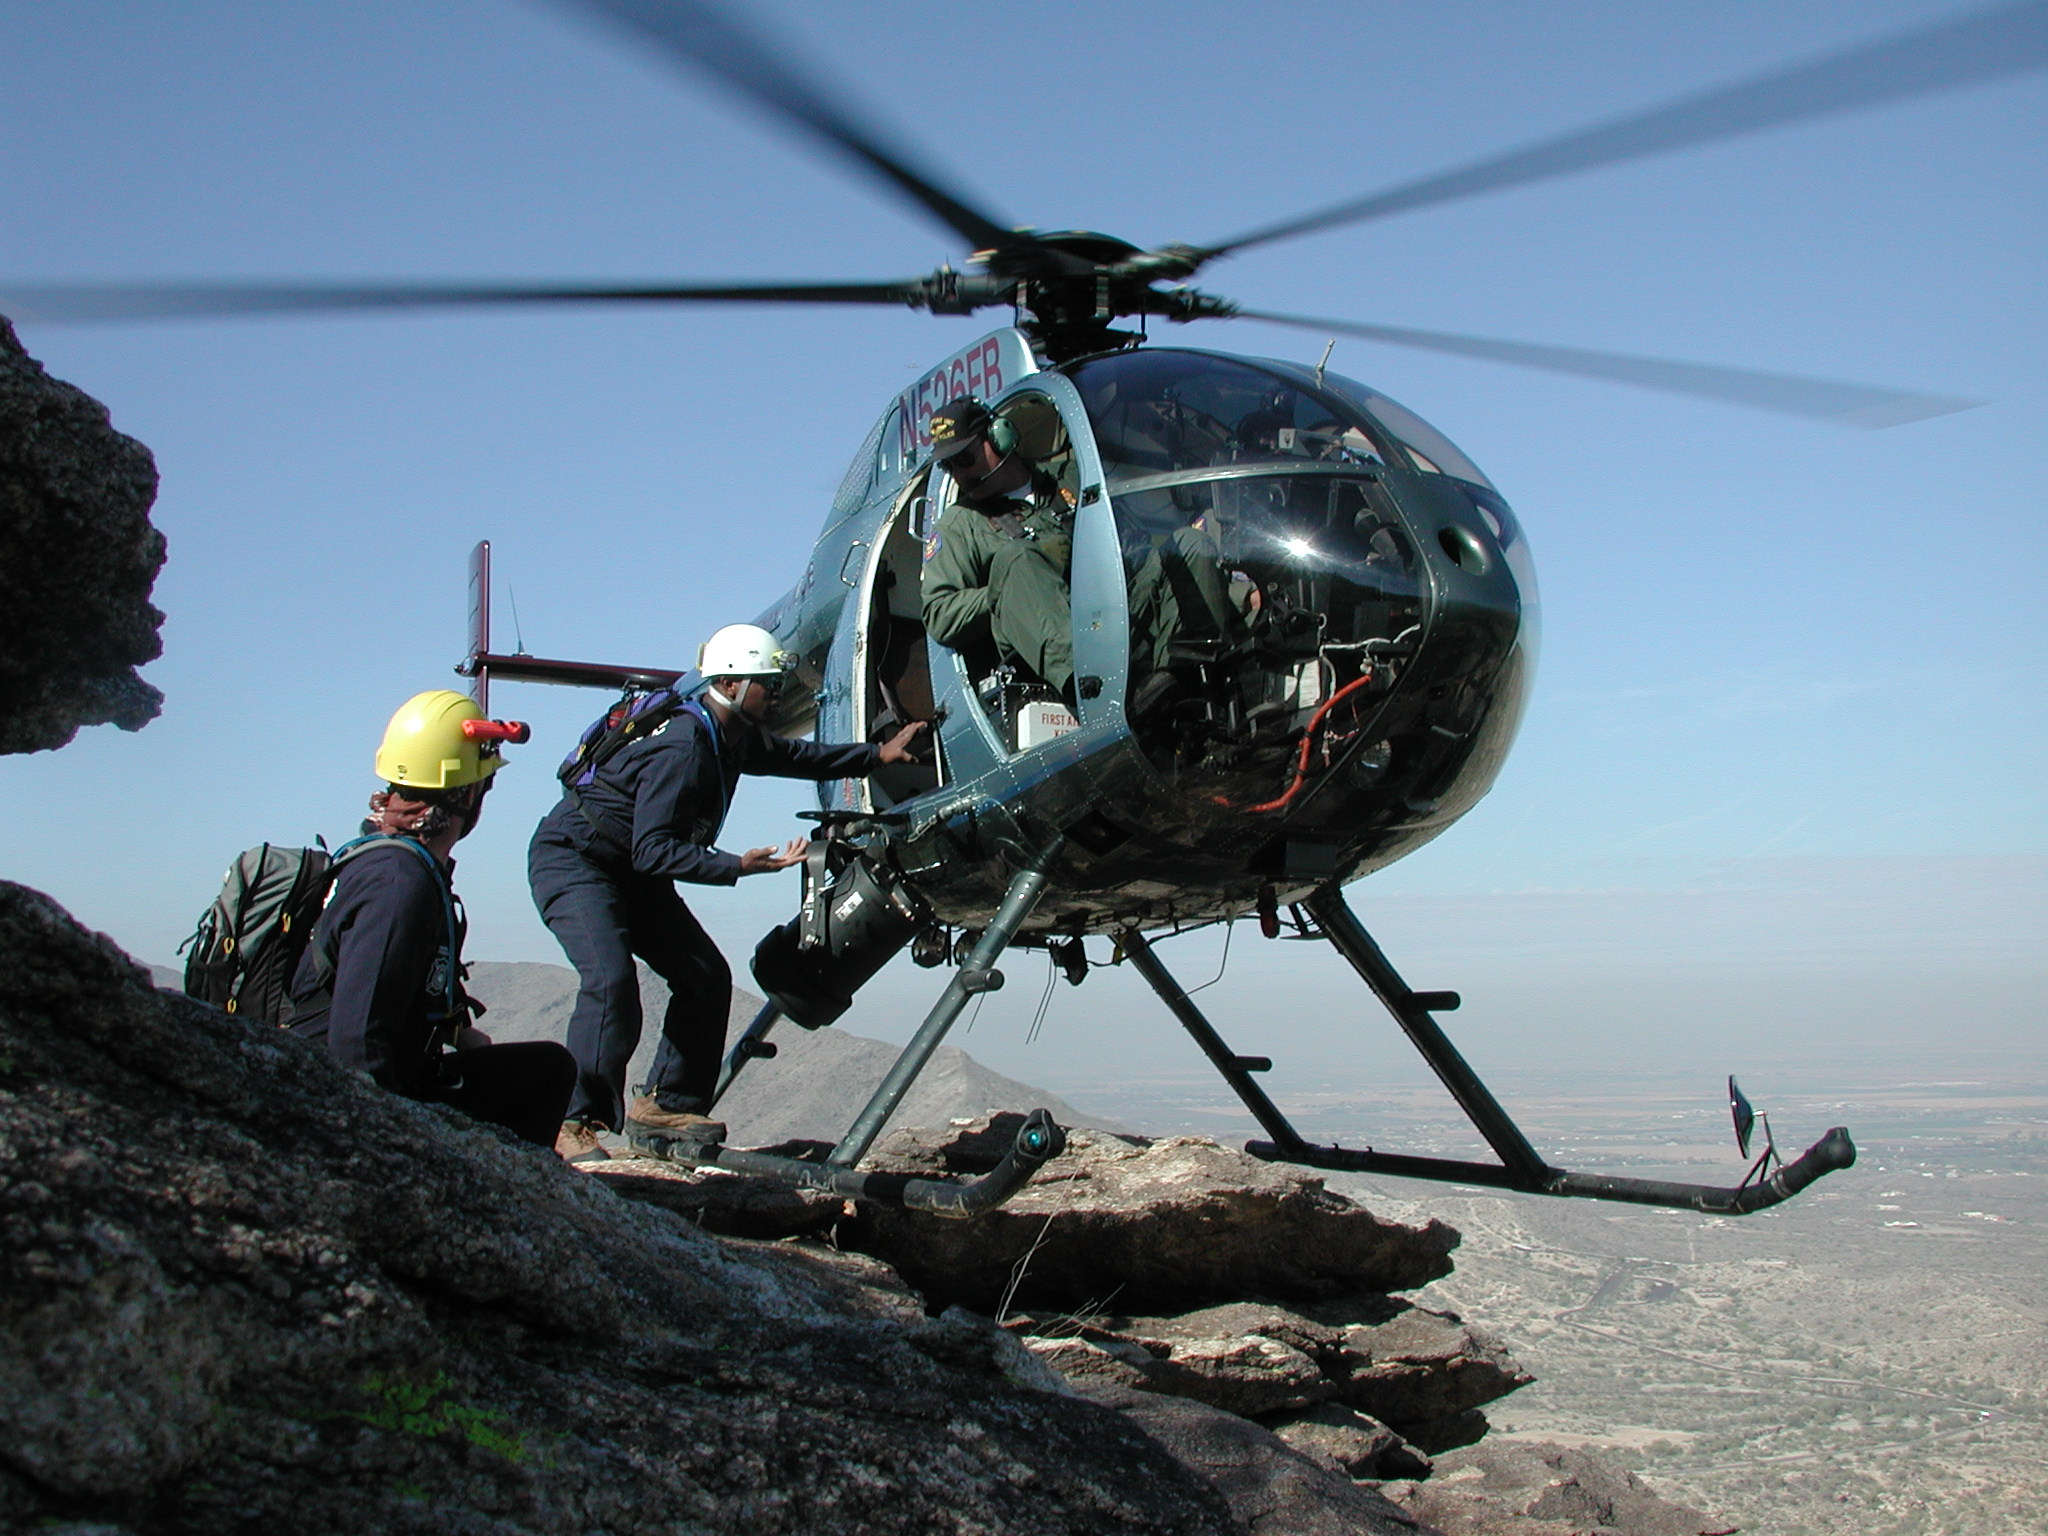 flight engine operation with Helicopter Rescue on China Should Have Operation Squadron Of moreover Fadec Full Authority Digital Engine Controlfinal as well Luxaviation Be es The Second Largest Corporate Aircraft Operator In The World After Execujet Acquisition also Z 242 L Guru En also Aero l 39 albatros.